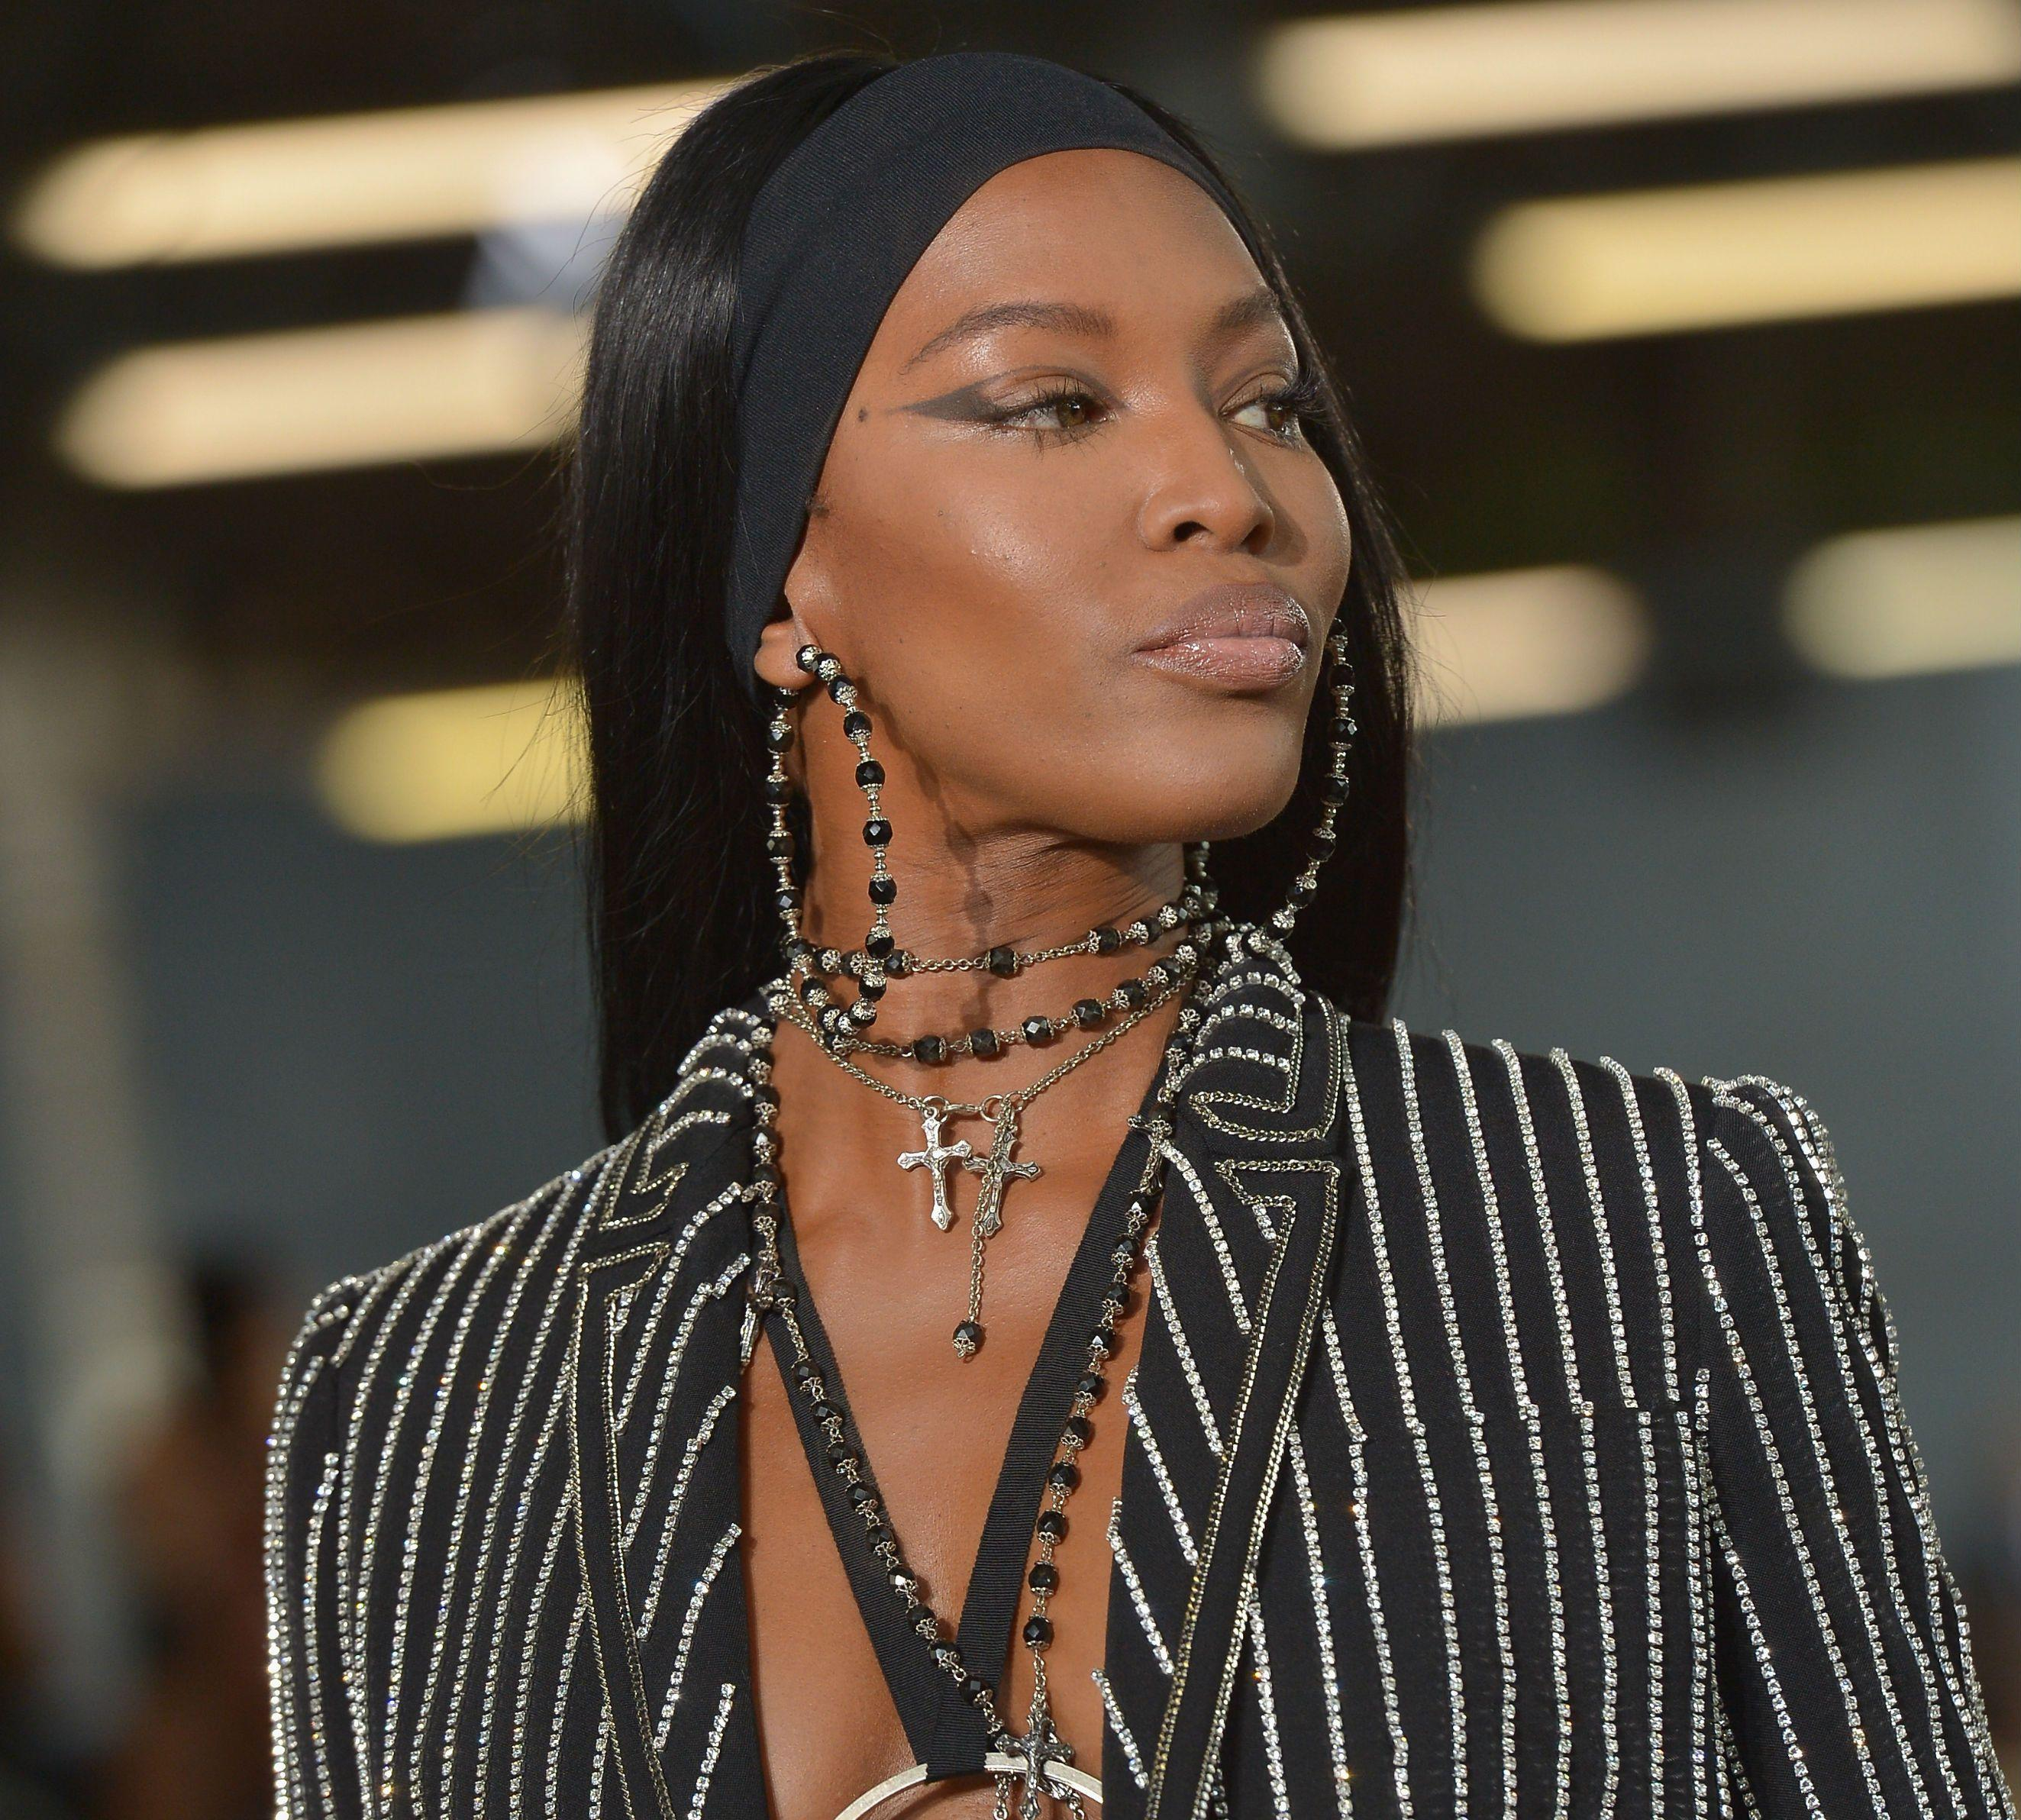 Pin by Twistedelegance78 on Naomi Campbell | Pinterest | Naomi campbell